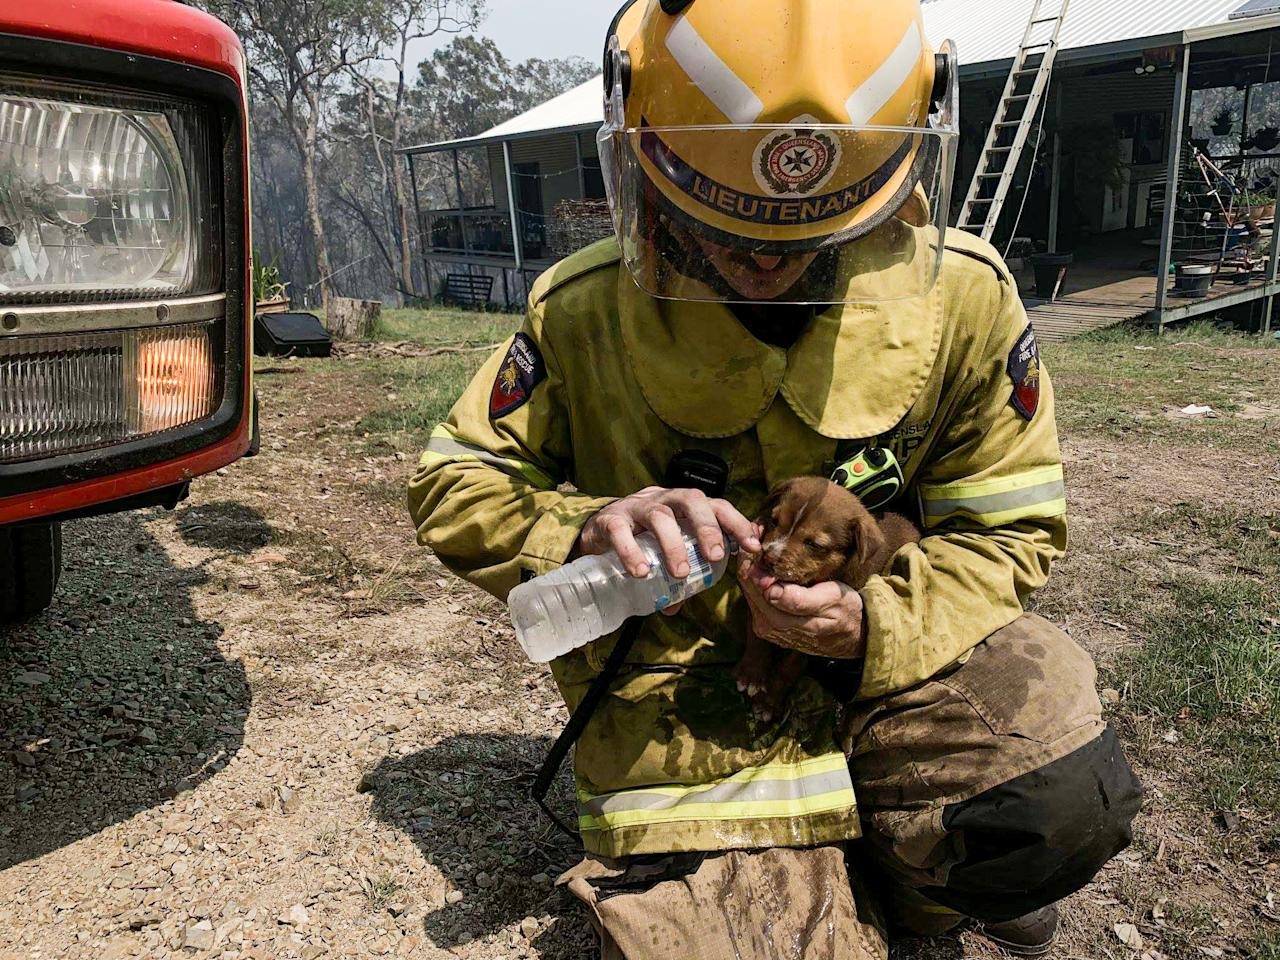 <p>A firefighter pouring water in the mouth of a puppy caught up in dangerous bushfires in Central Queensland. Source: AAP </p>